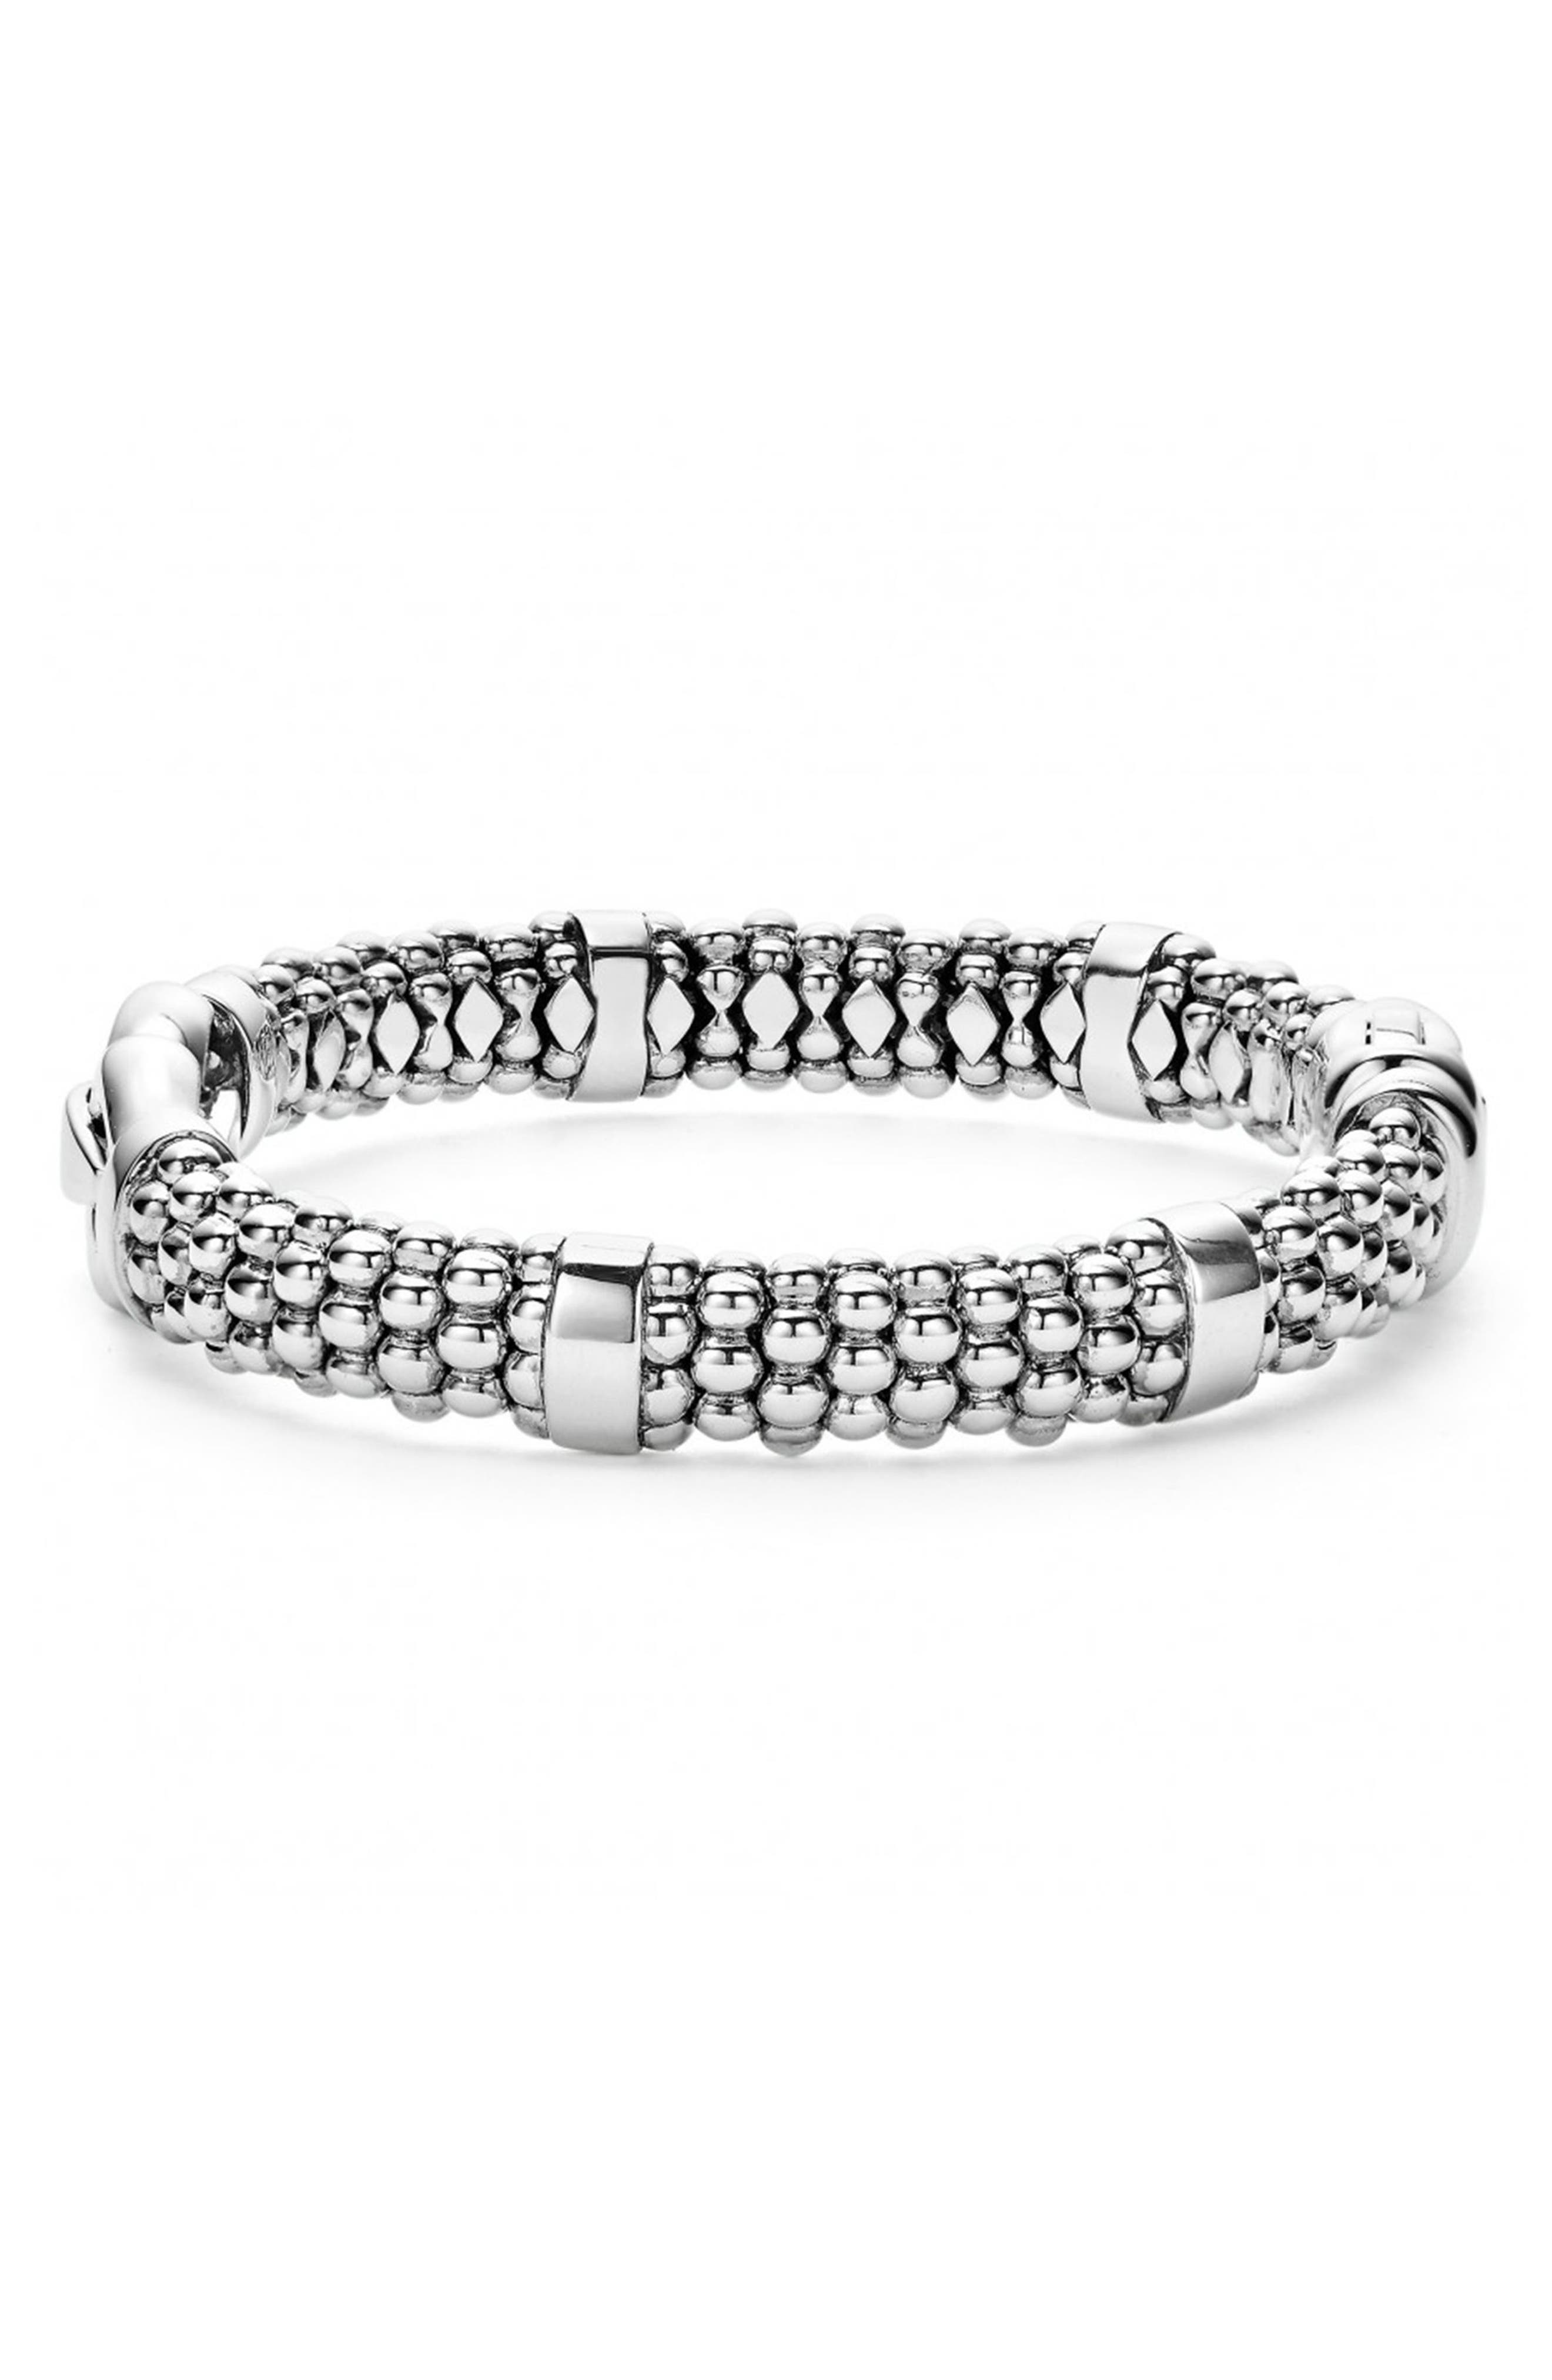 'Derby' Caviar Rope Bracelet,                             Alternate thumbnail 3, color,                             Sterling Silver